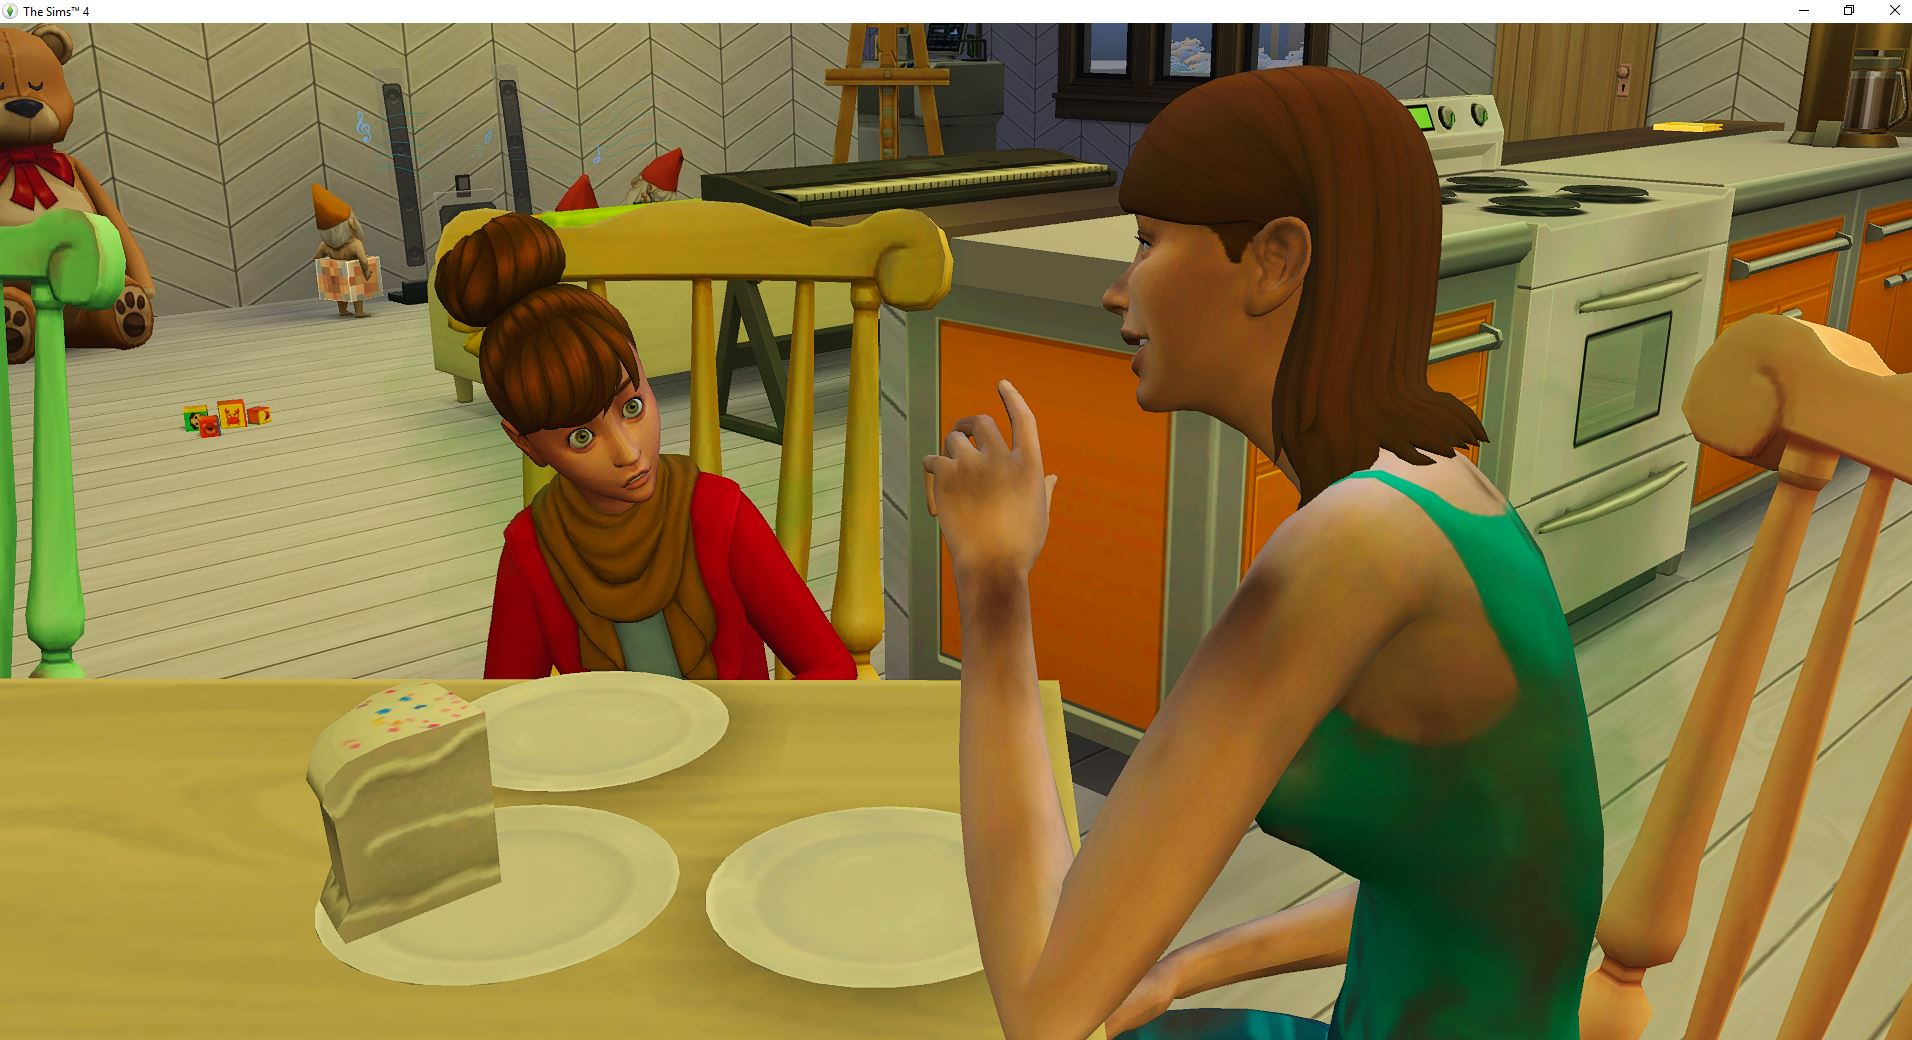 2019-01-06 13_53_27-The Sims™ 4